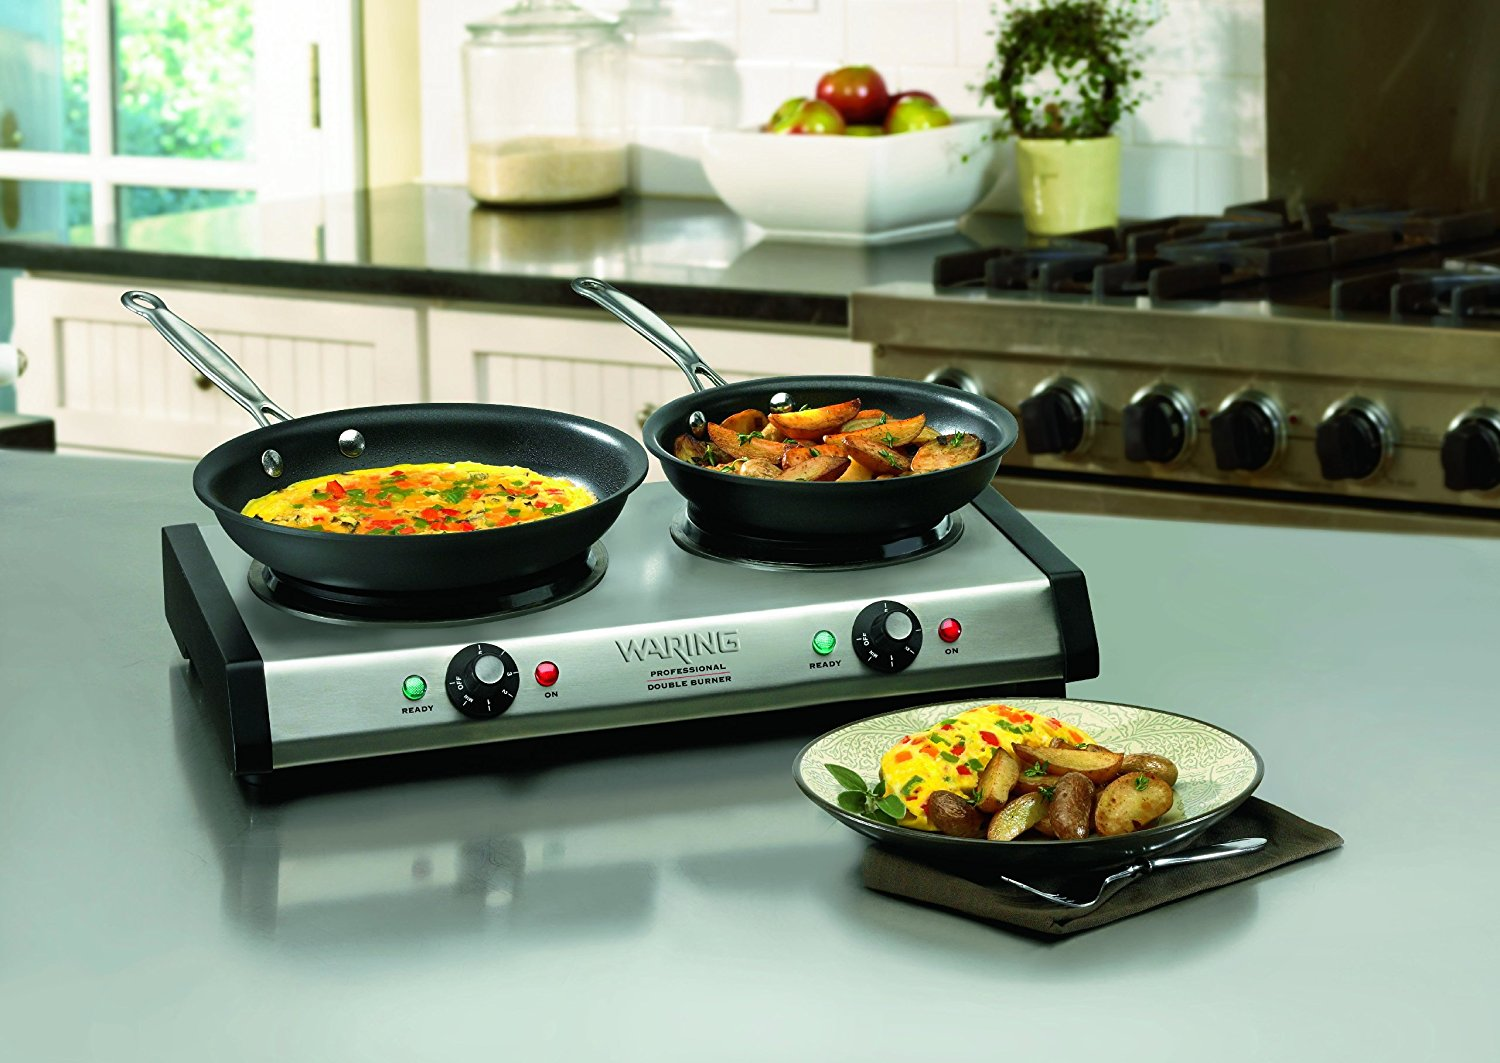 Cuisinart 1800 Watt Countertop Double Electric Burner With 6 Heat Settings And Brushed Stainless Steel Housing